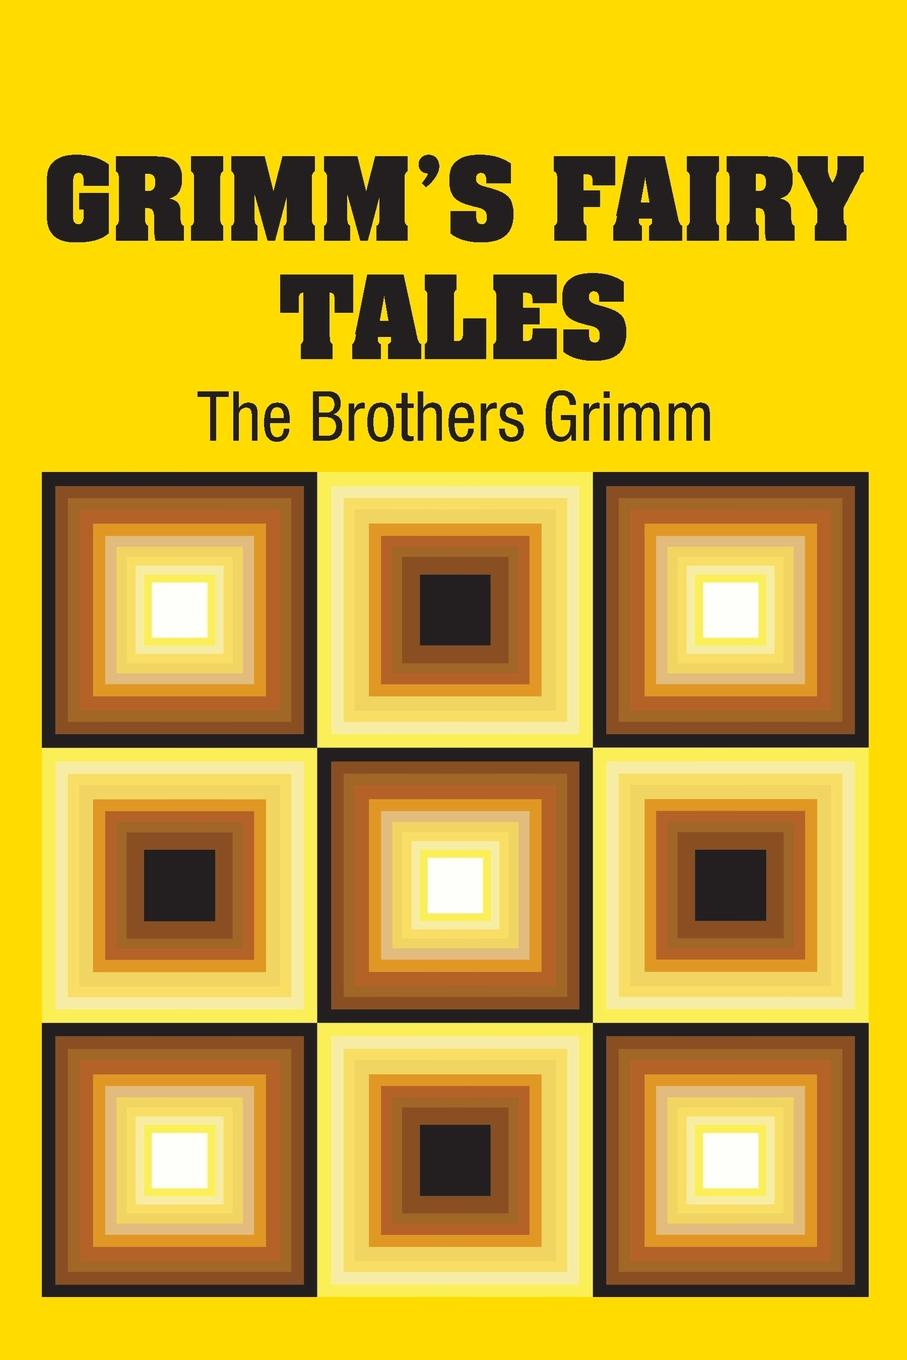 The Brothers Grimm Grimm's Fairy Tales selected fairy tales